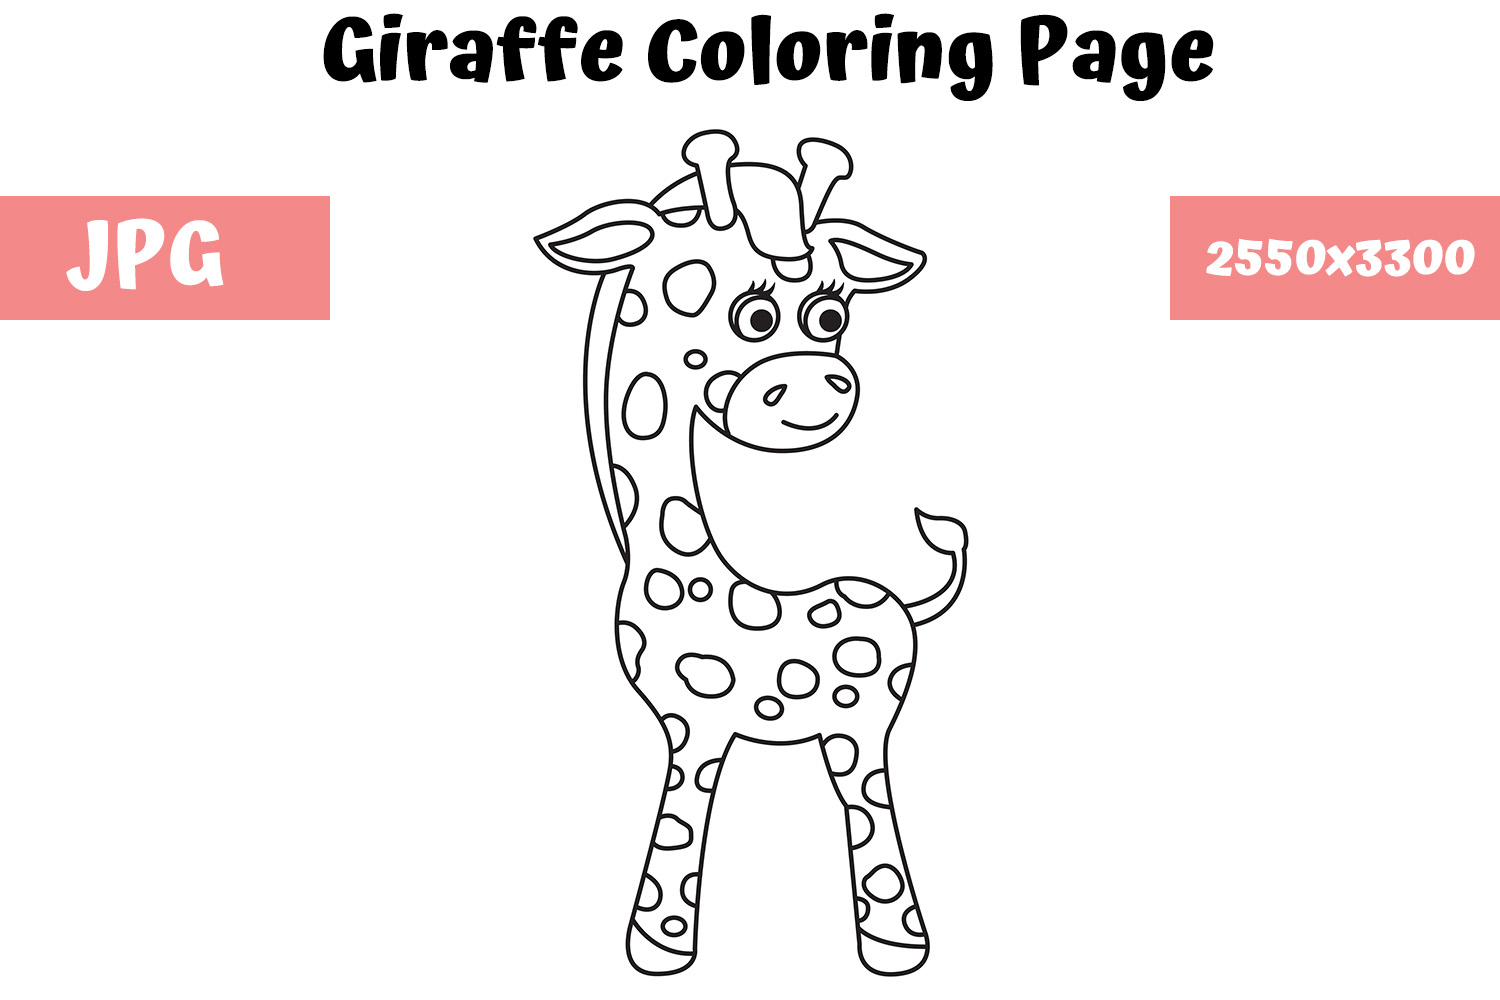 - Giraffe - Coloring Page For Kids (Graphic) By MyBeautifulFiles